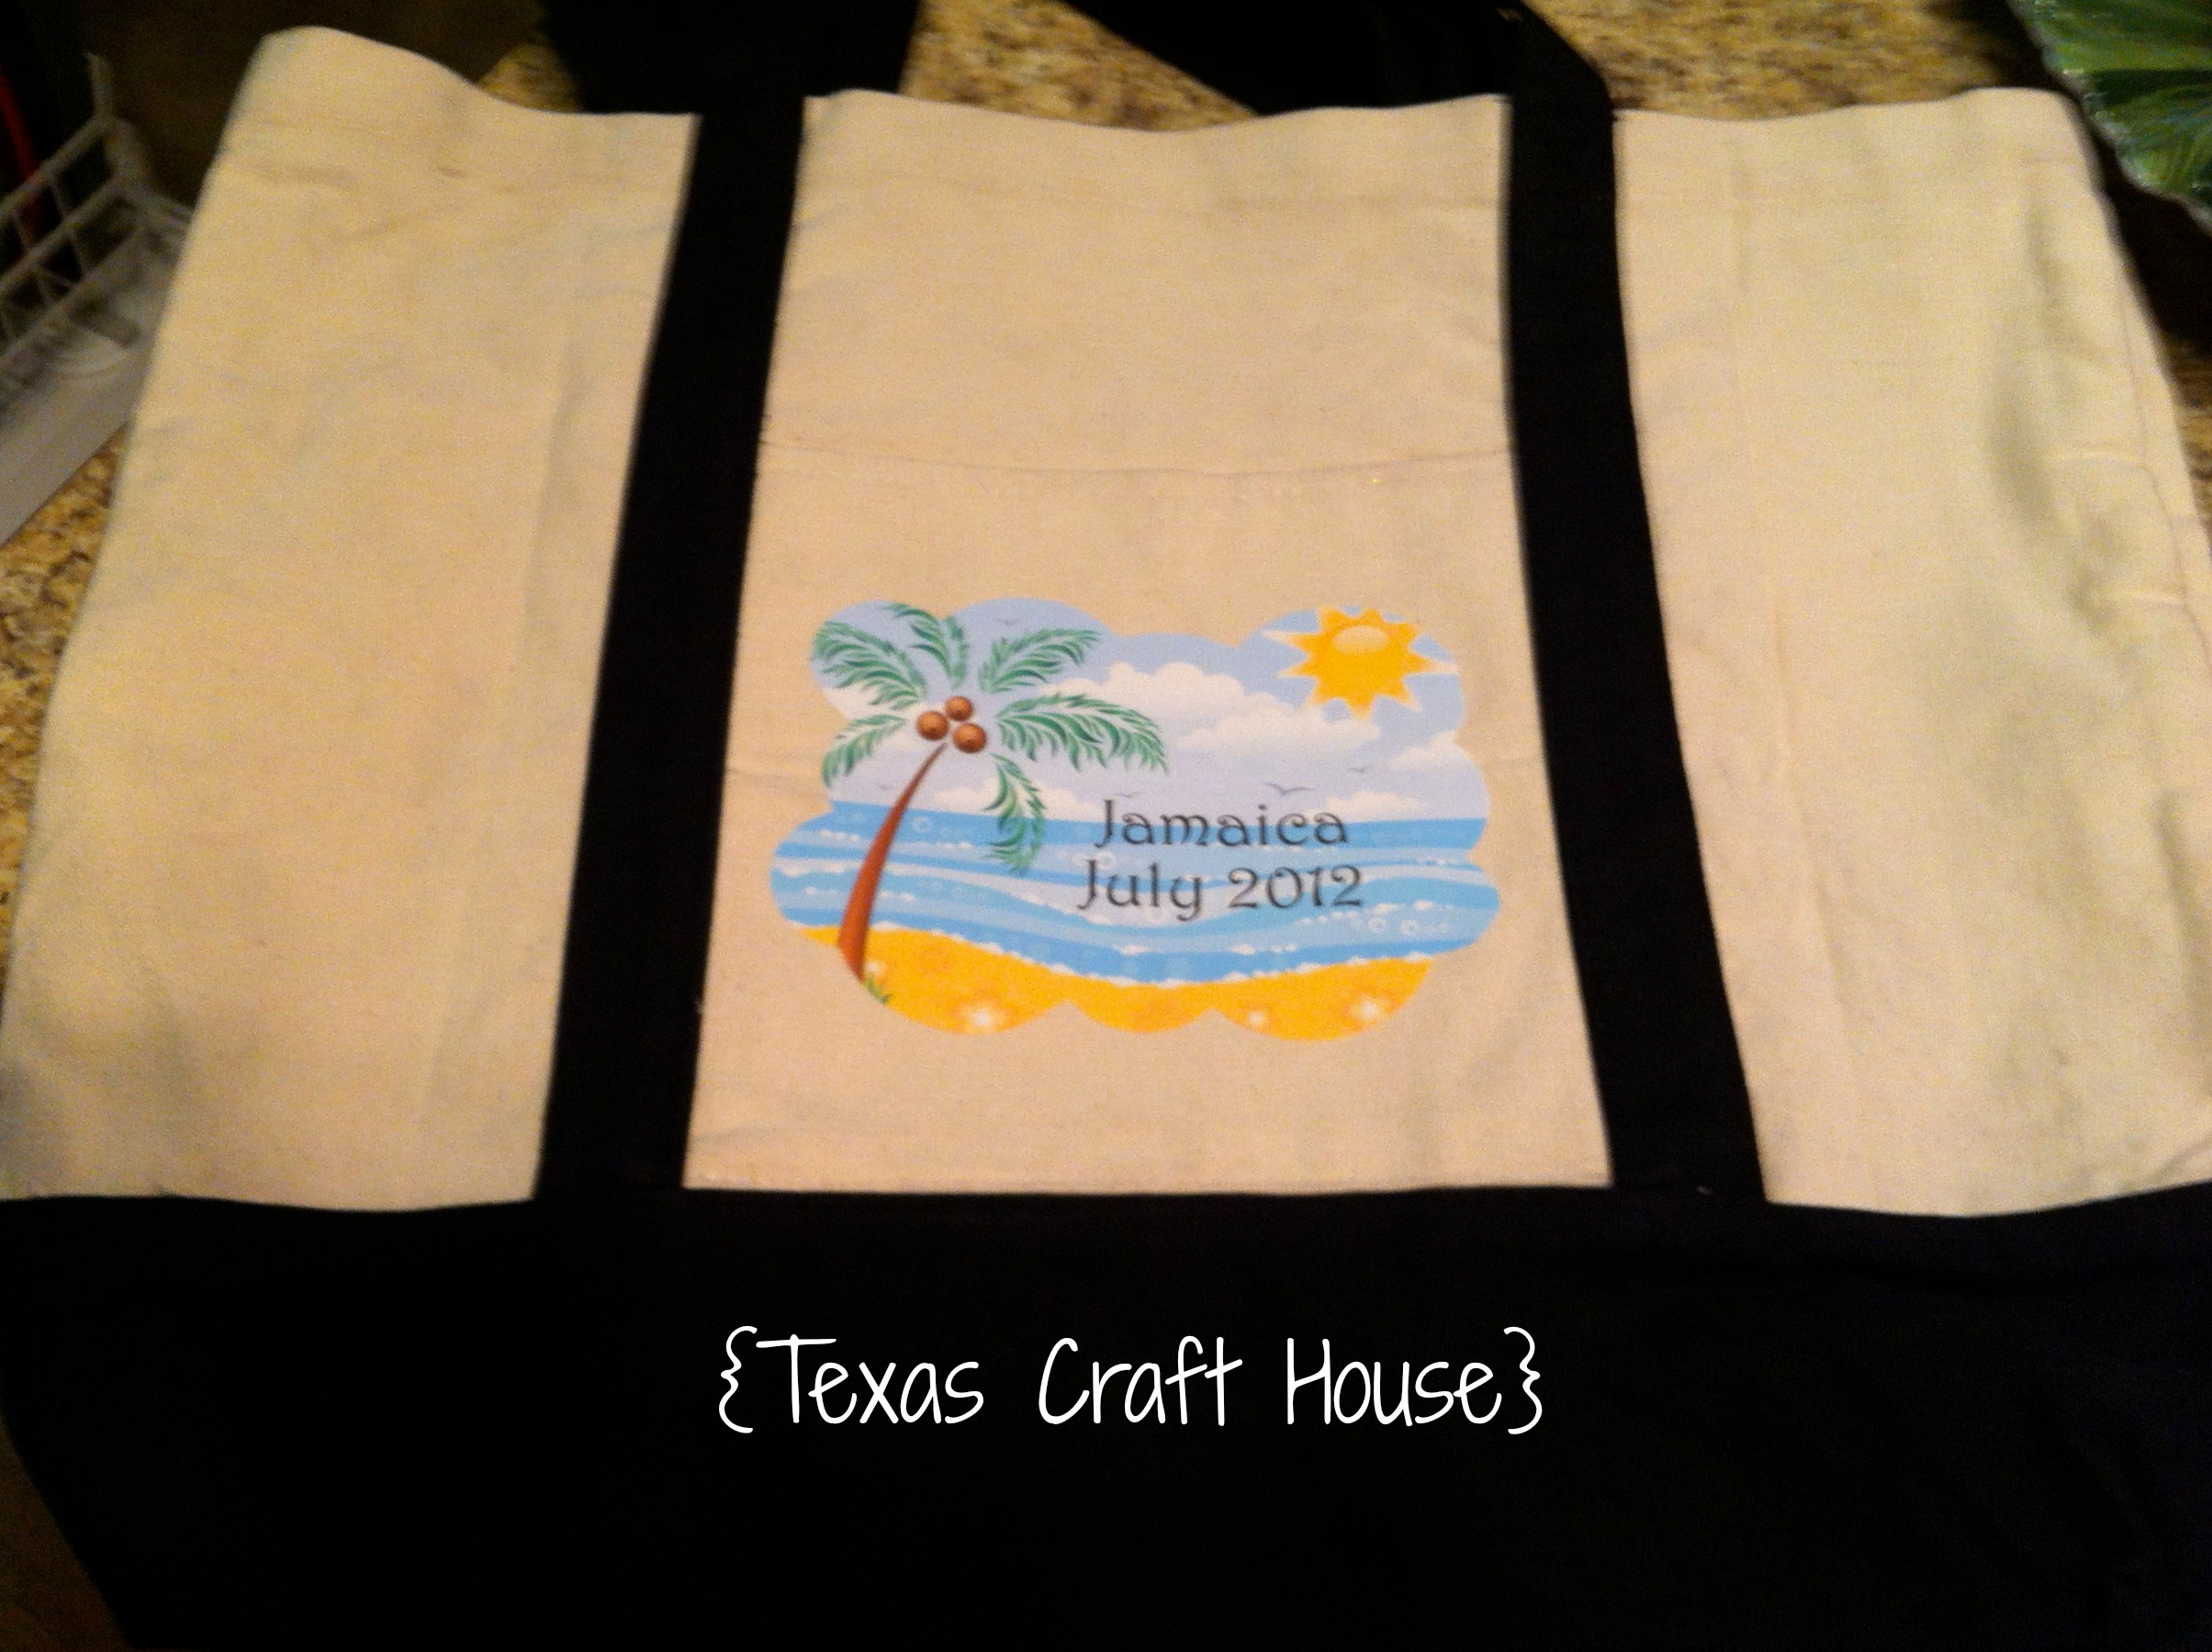 Diy Destination Wedding Gift Bags : ... the iron and the bag and then simply ironed it directly onto the bag